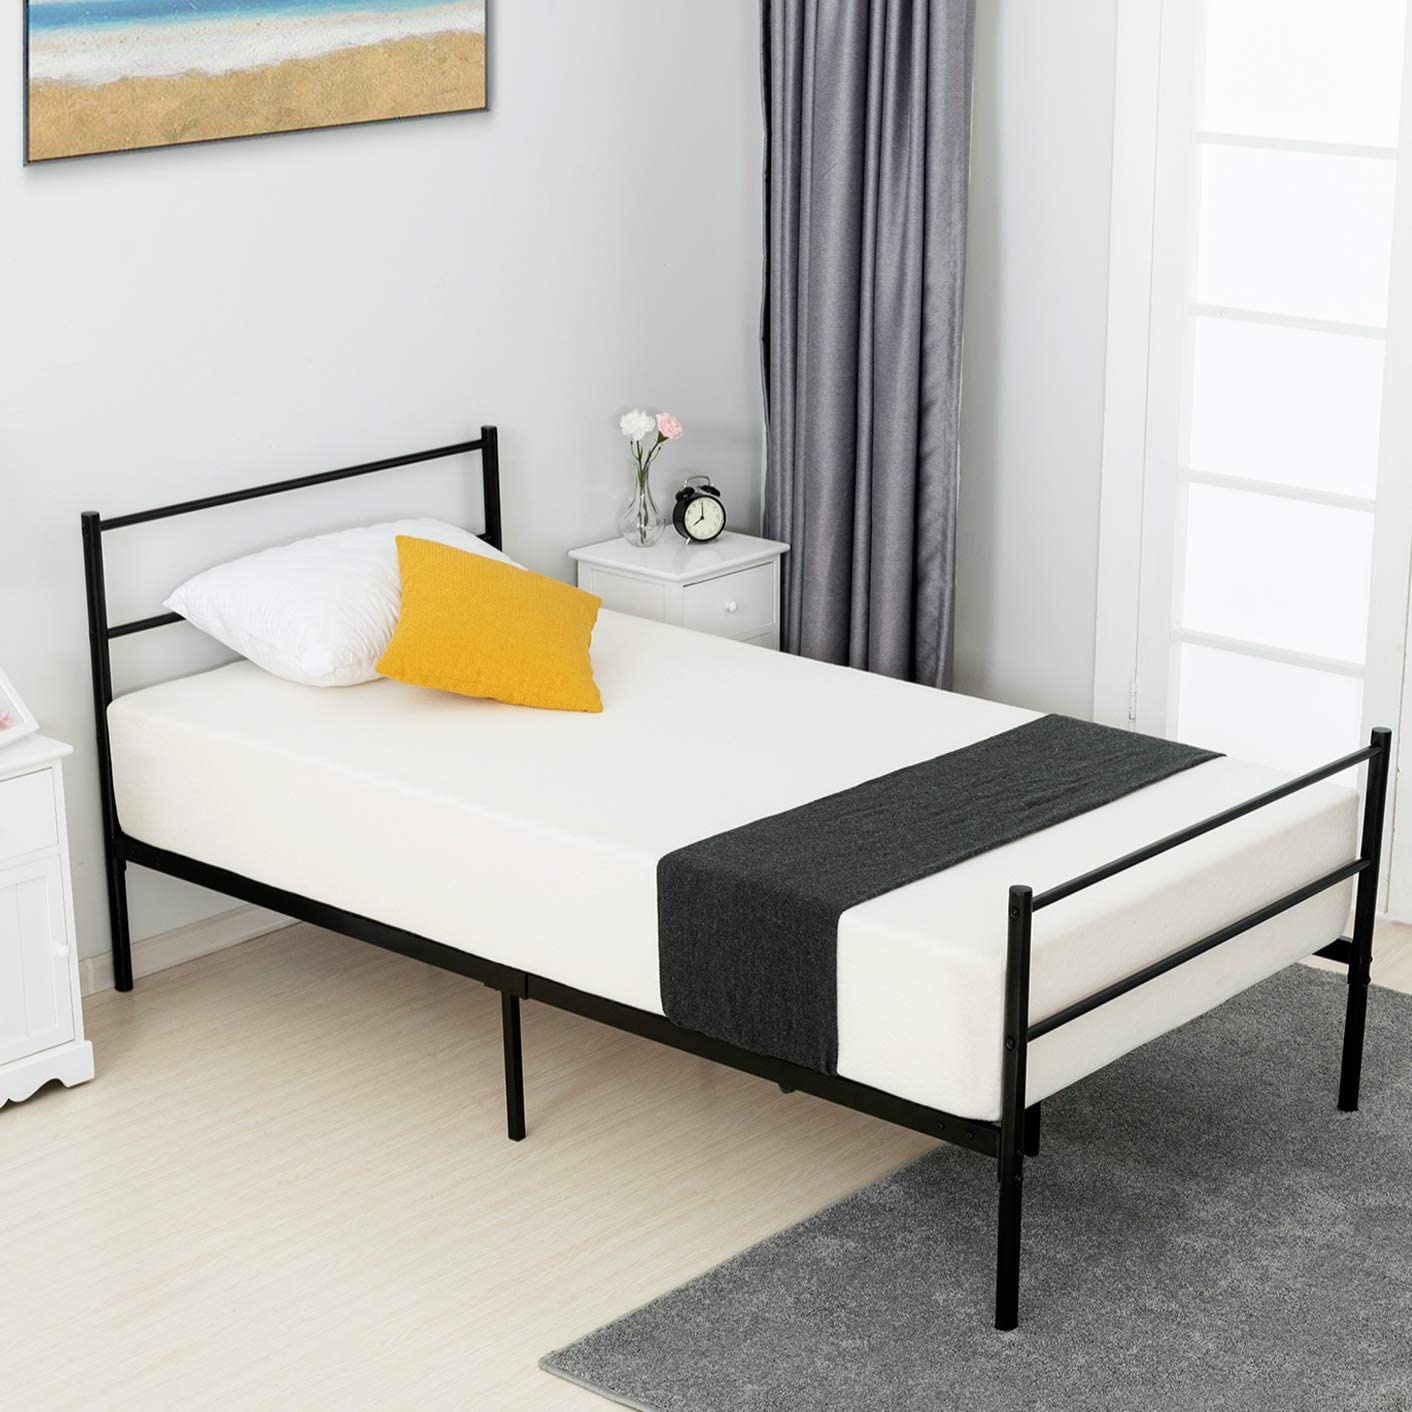 mecor Metal Twin Bed Frame, Platform Bed with 9 Stable Legs with Anti-Scratch Gaskets, with Steel Headboard Footboard, with Durable Metal Slat Support, Twin Size, Black